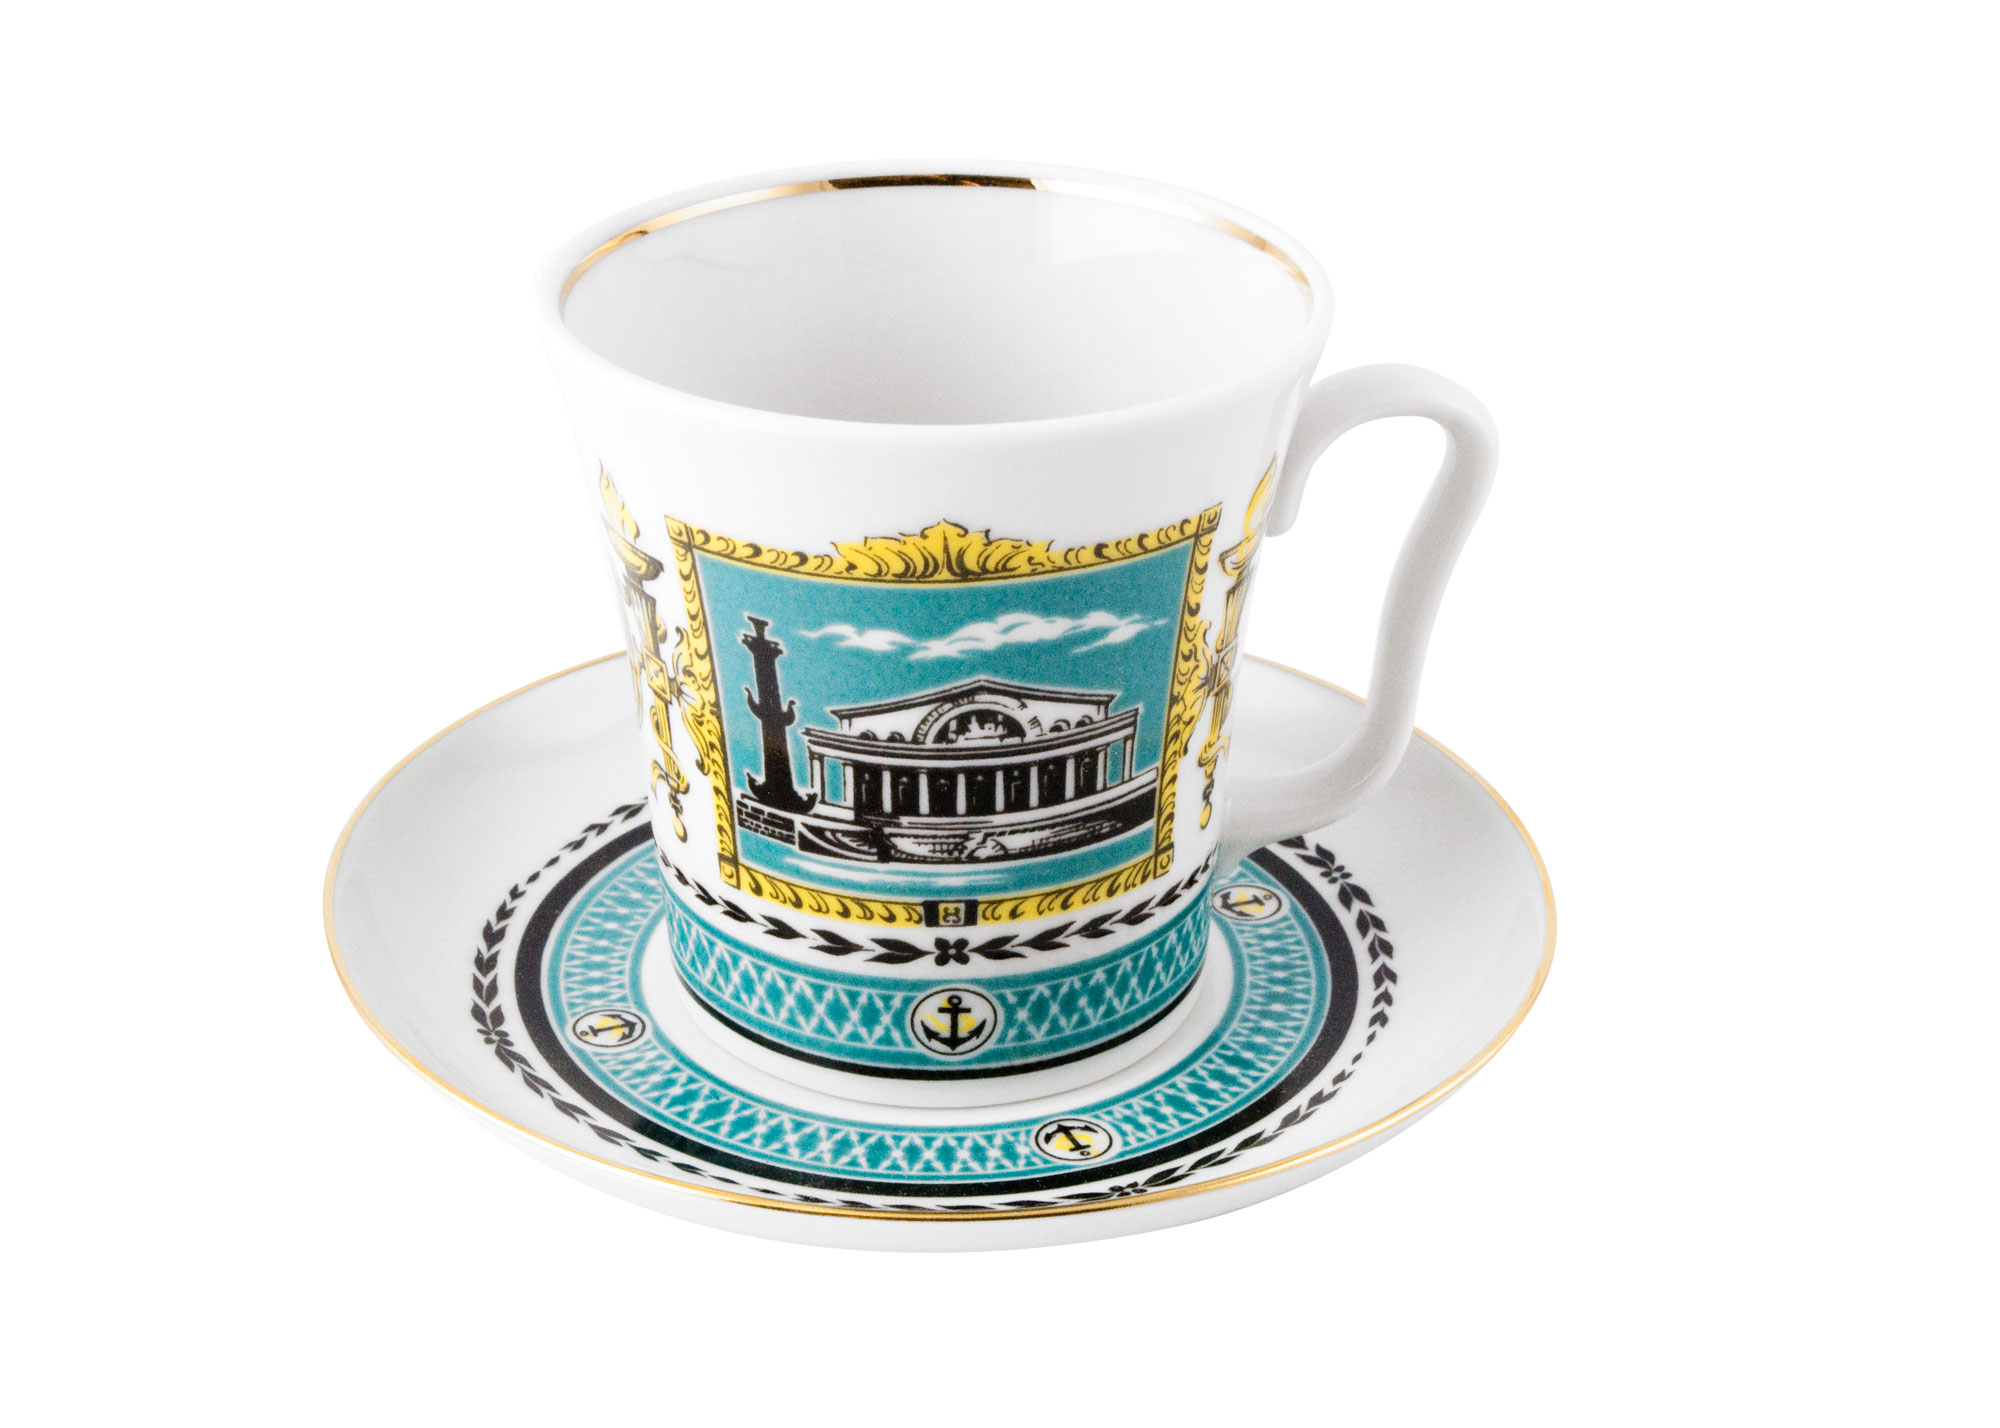 Buy Leningrad Landscapes Mug and Saucer at GoldenCockerel.com